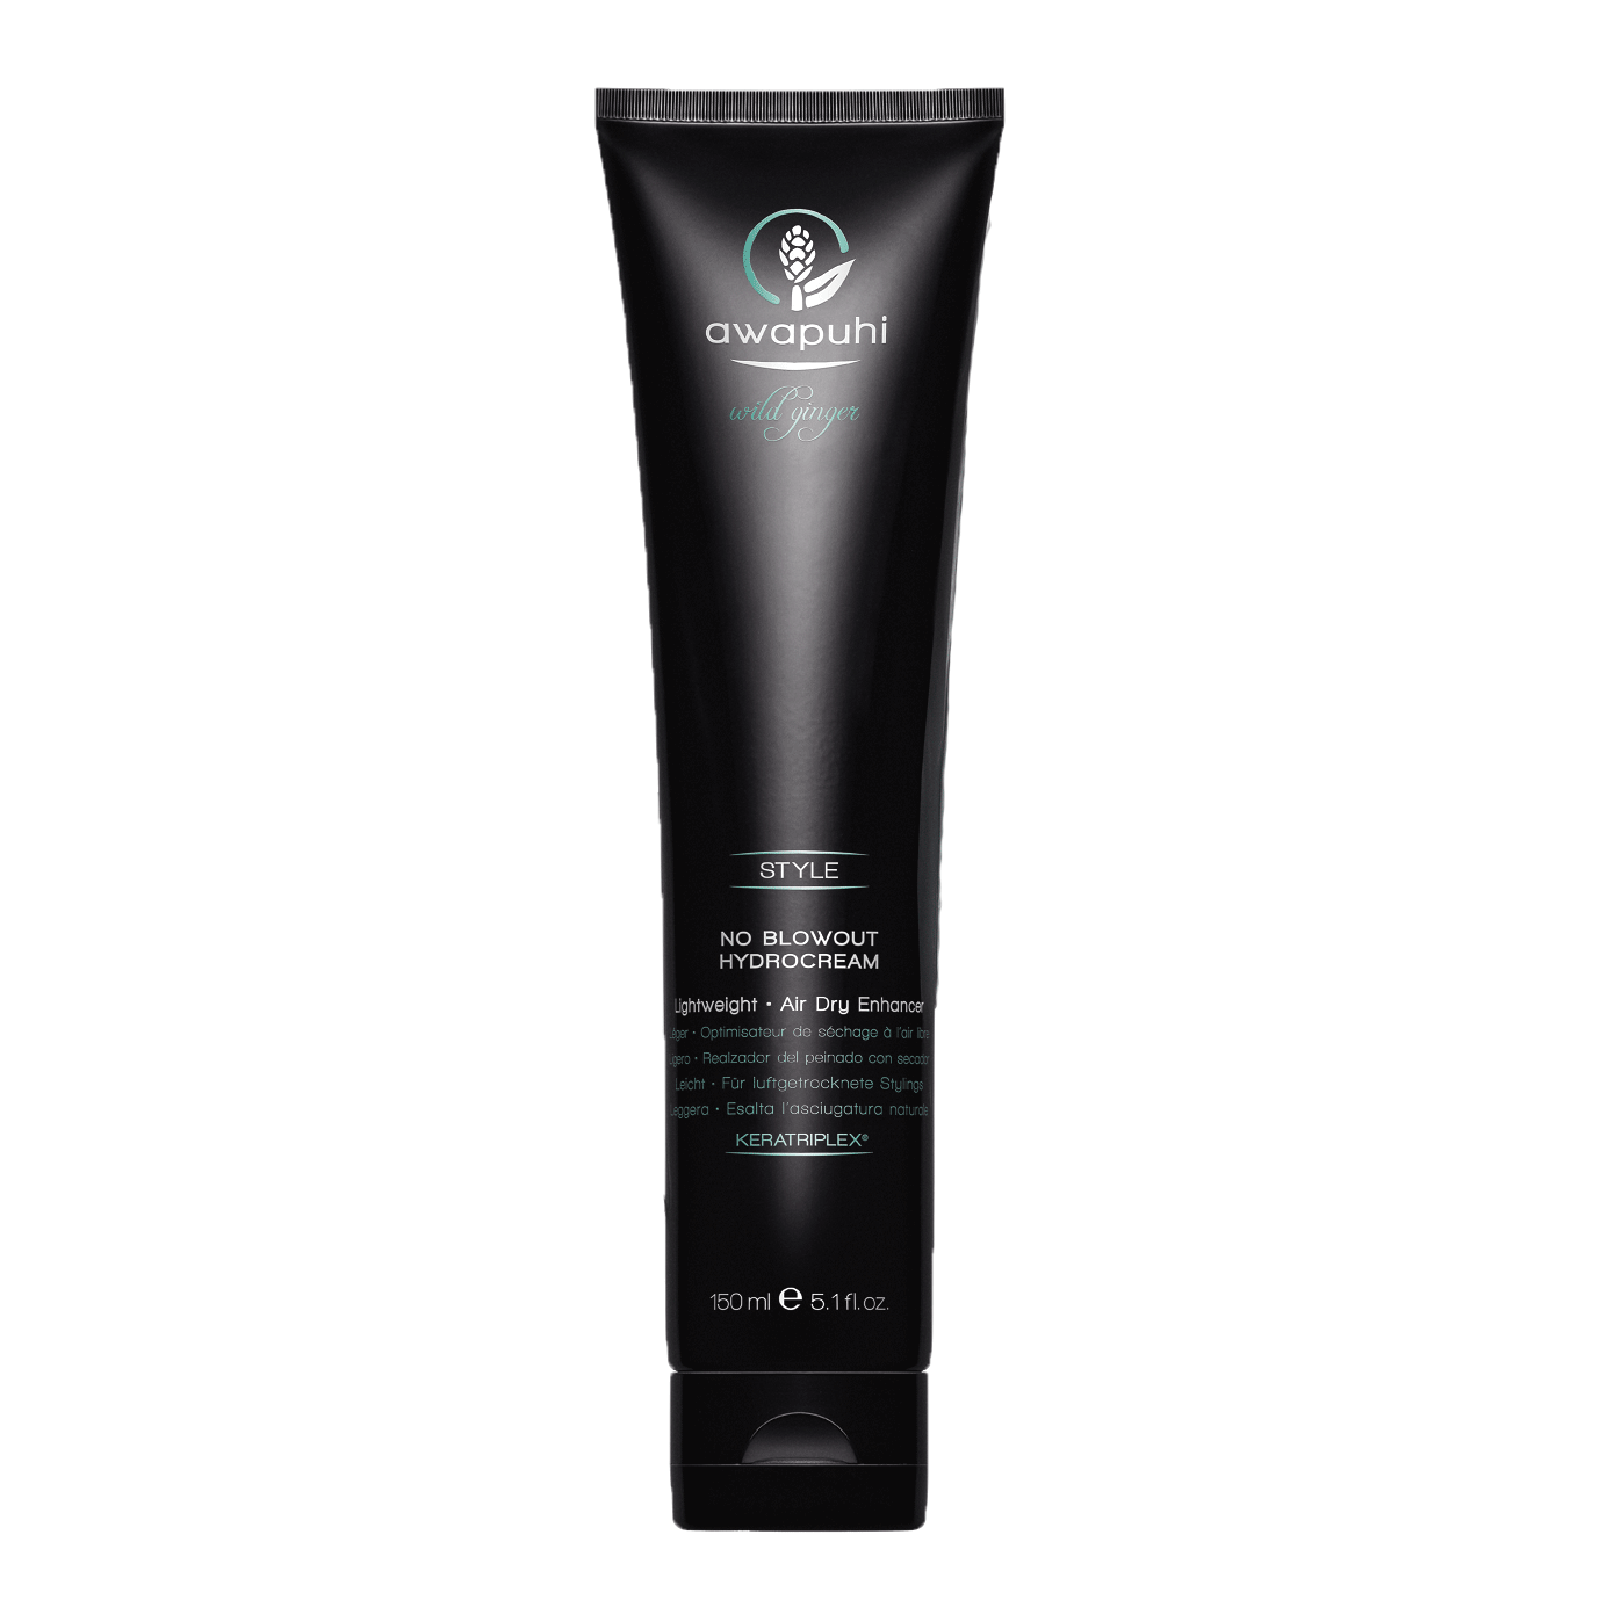 Awapuhi Wild Ginger - No Blow Out Hydrocream